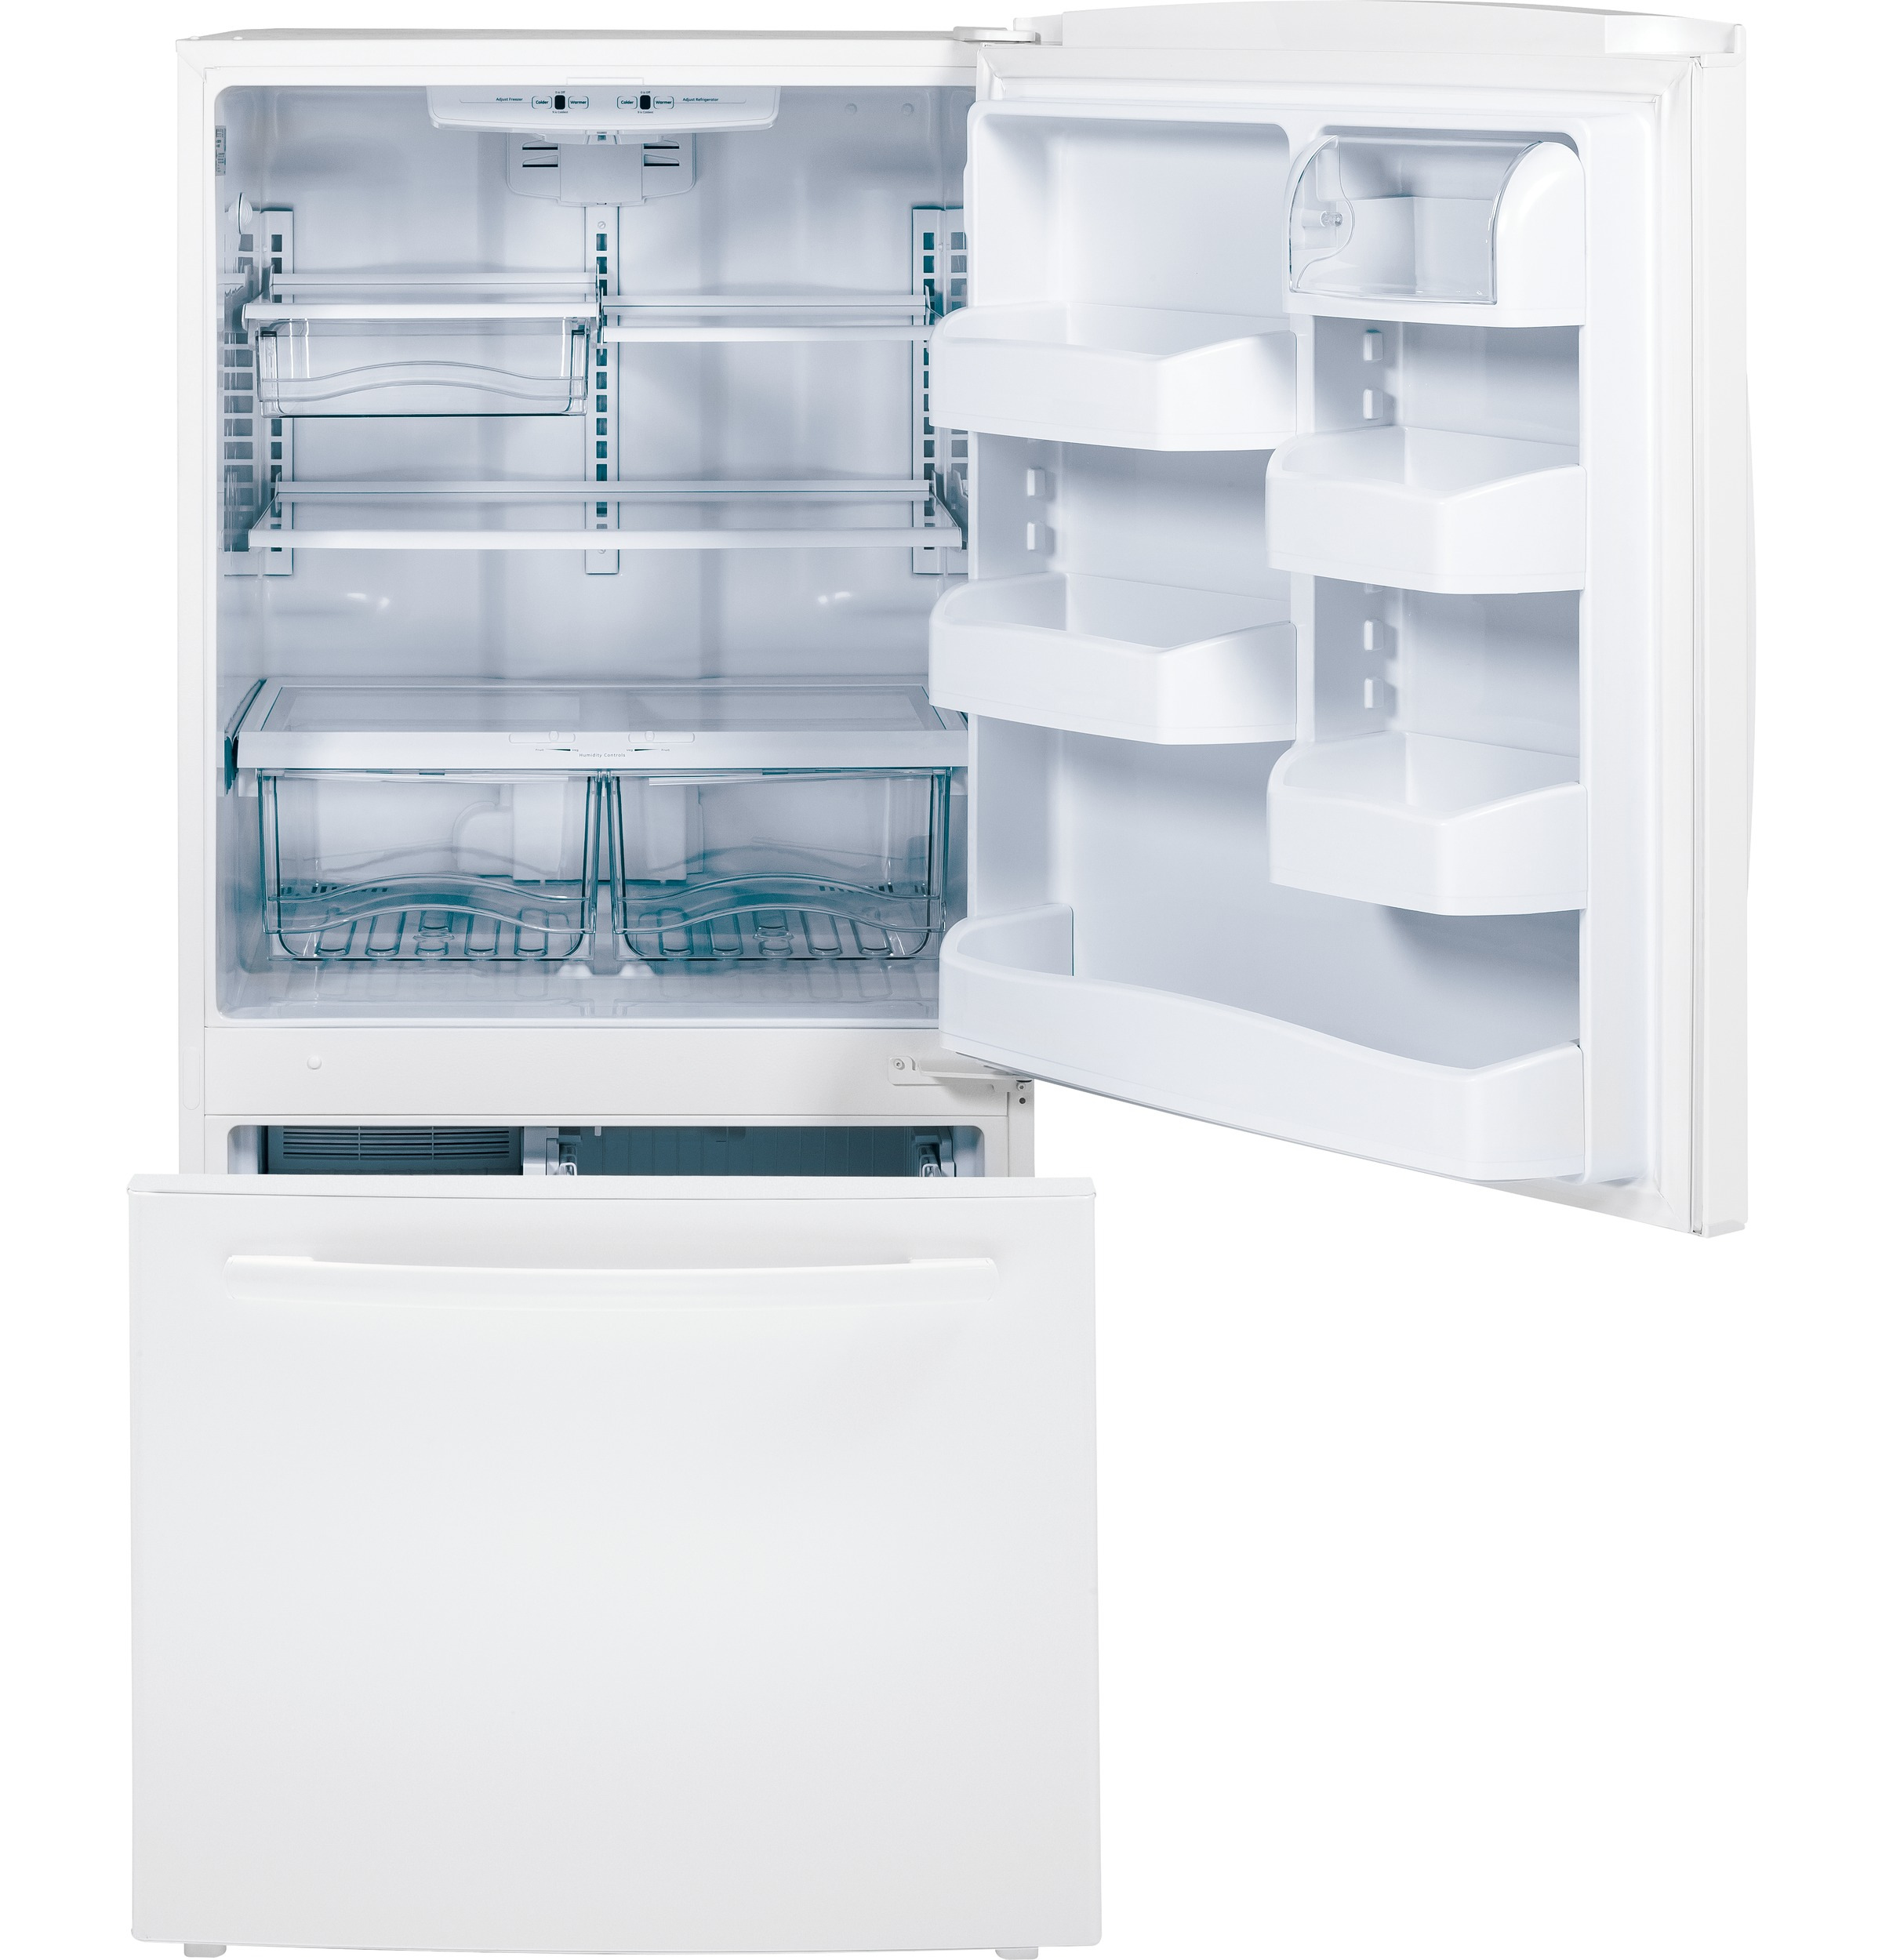 image cu energy requesttype star appliance bottom drawer specs ft freezer product refrigerator gea dispatcher name ge